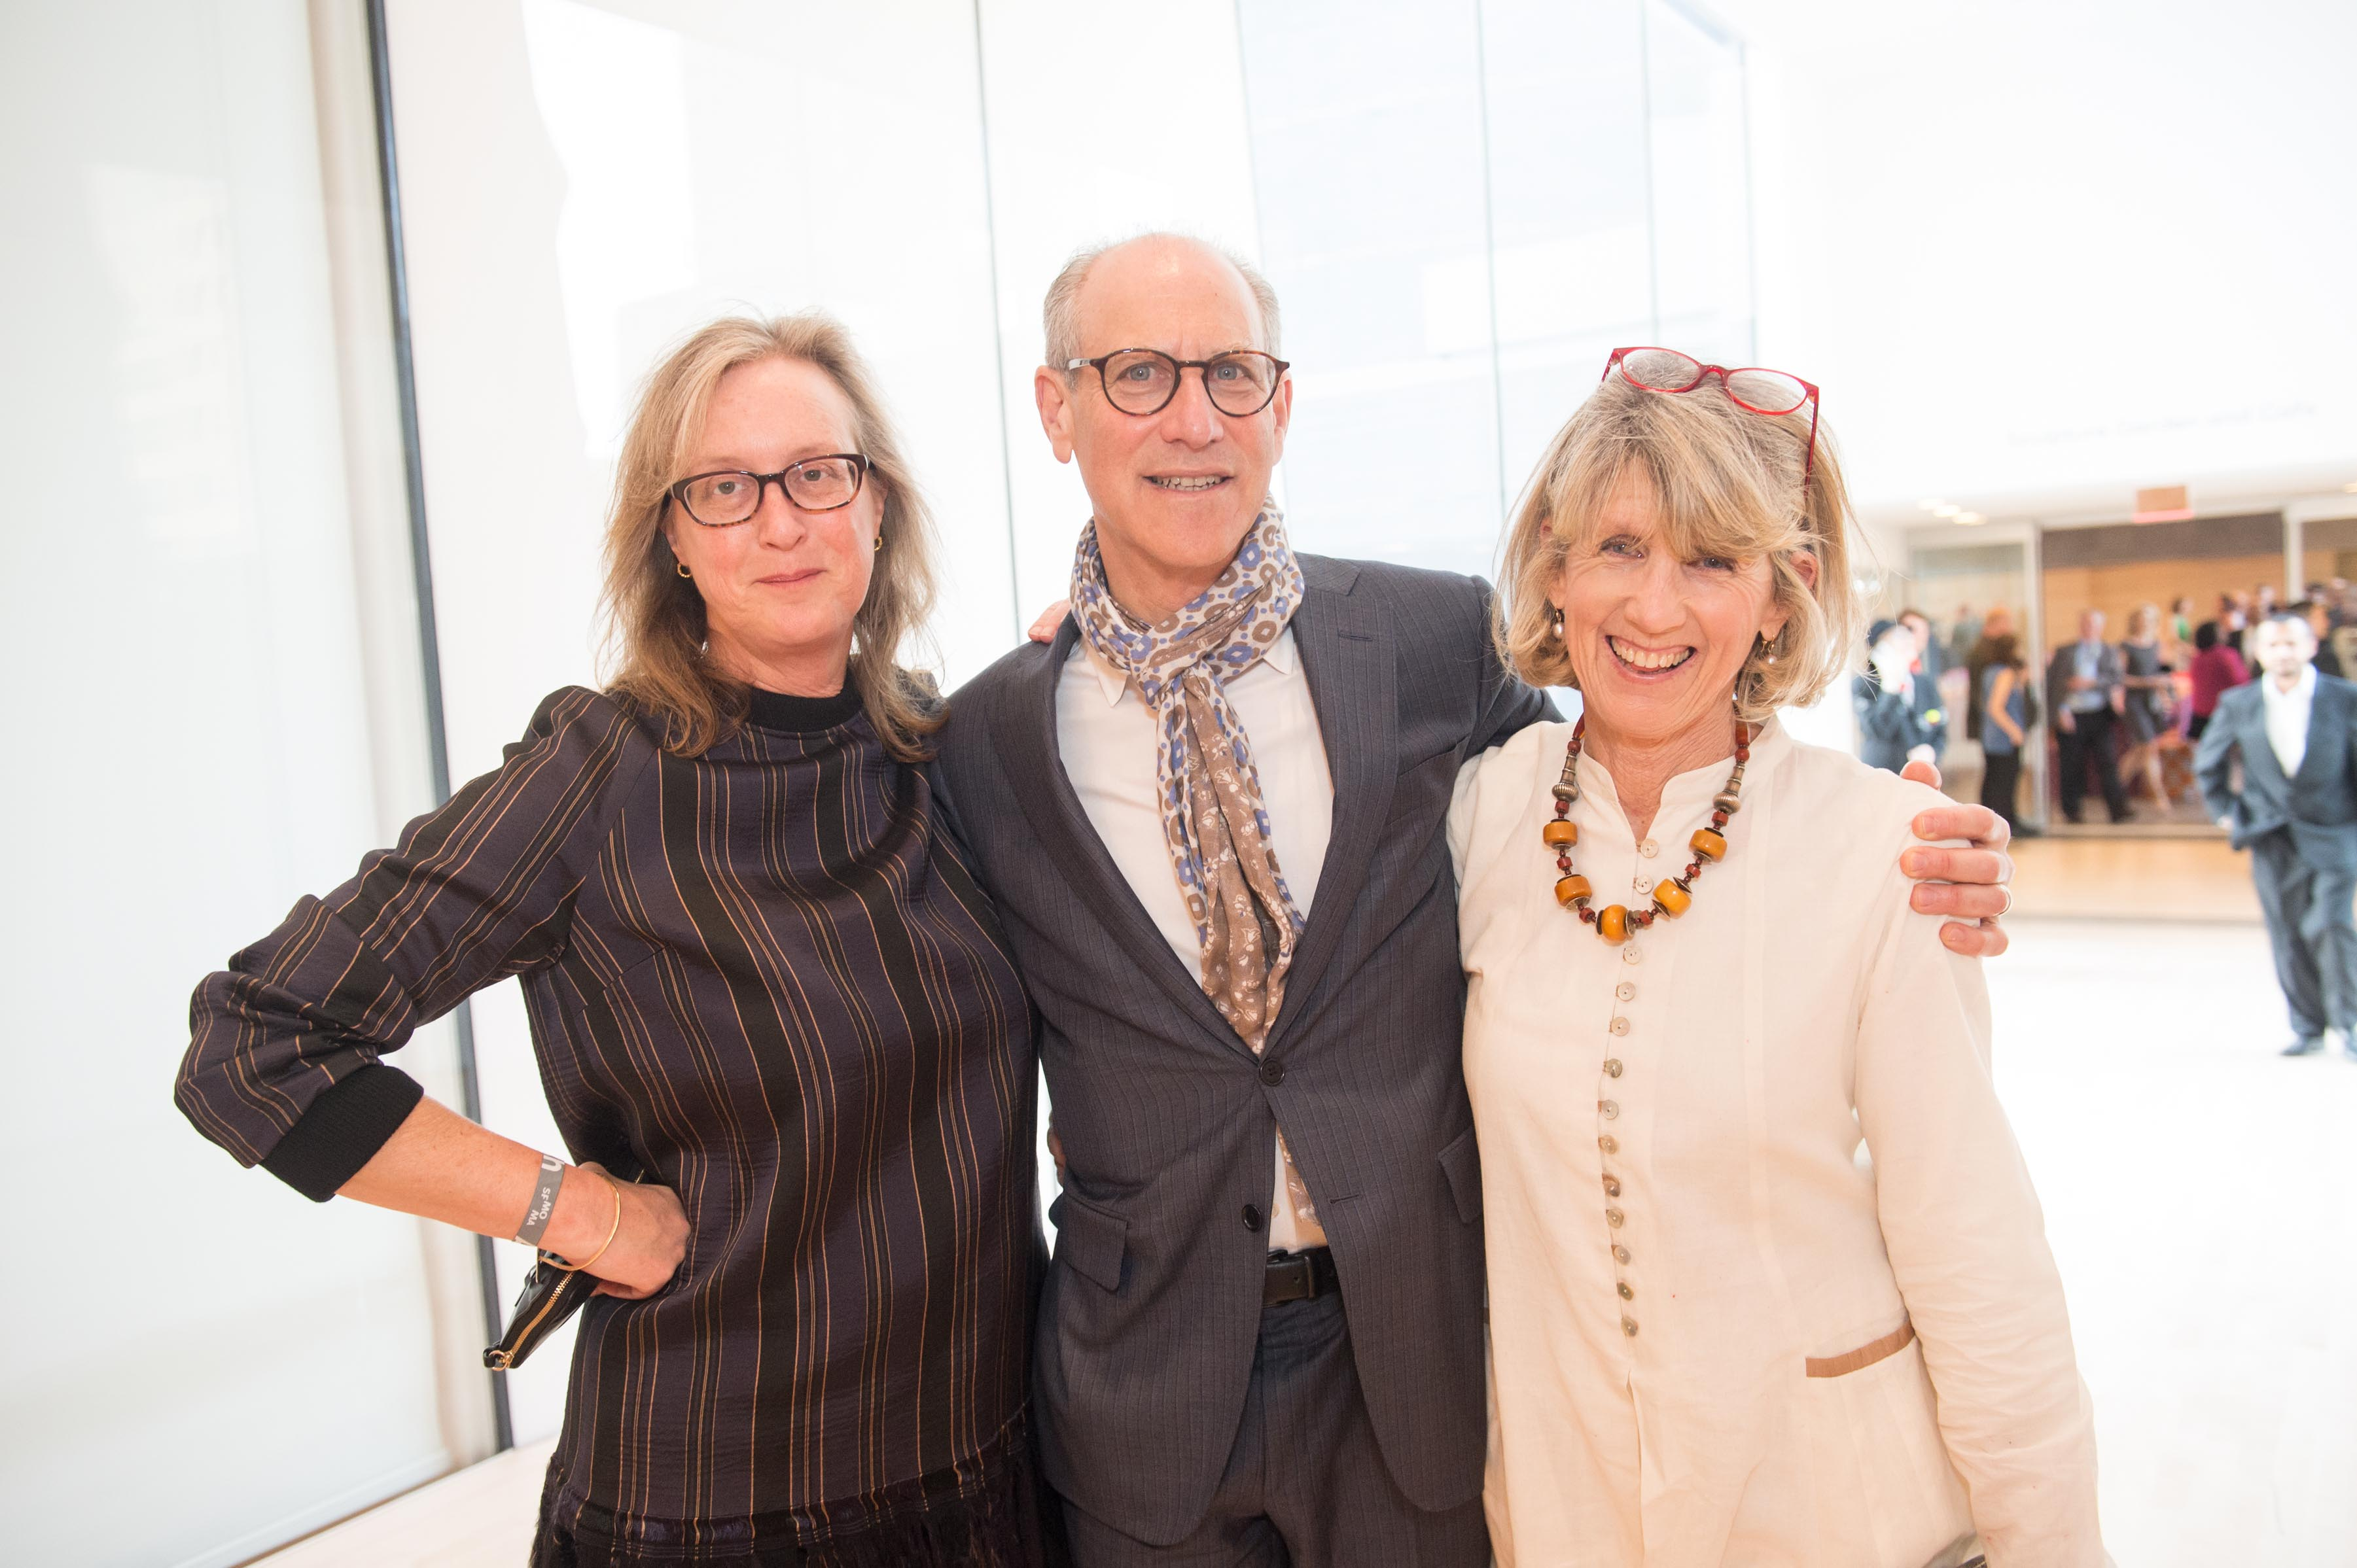 SFMOMA Curator Janet Bishop; Glenn Lowry, Director of NYC's Museum of Modern Art; and Susan Lowry.